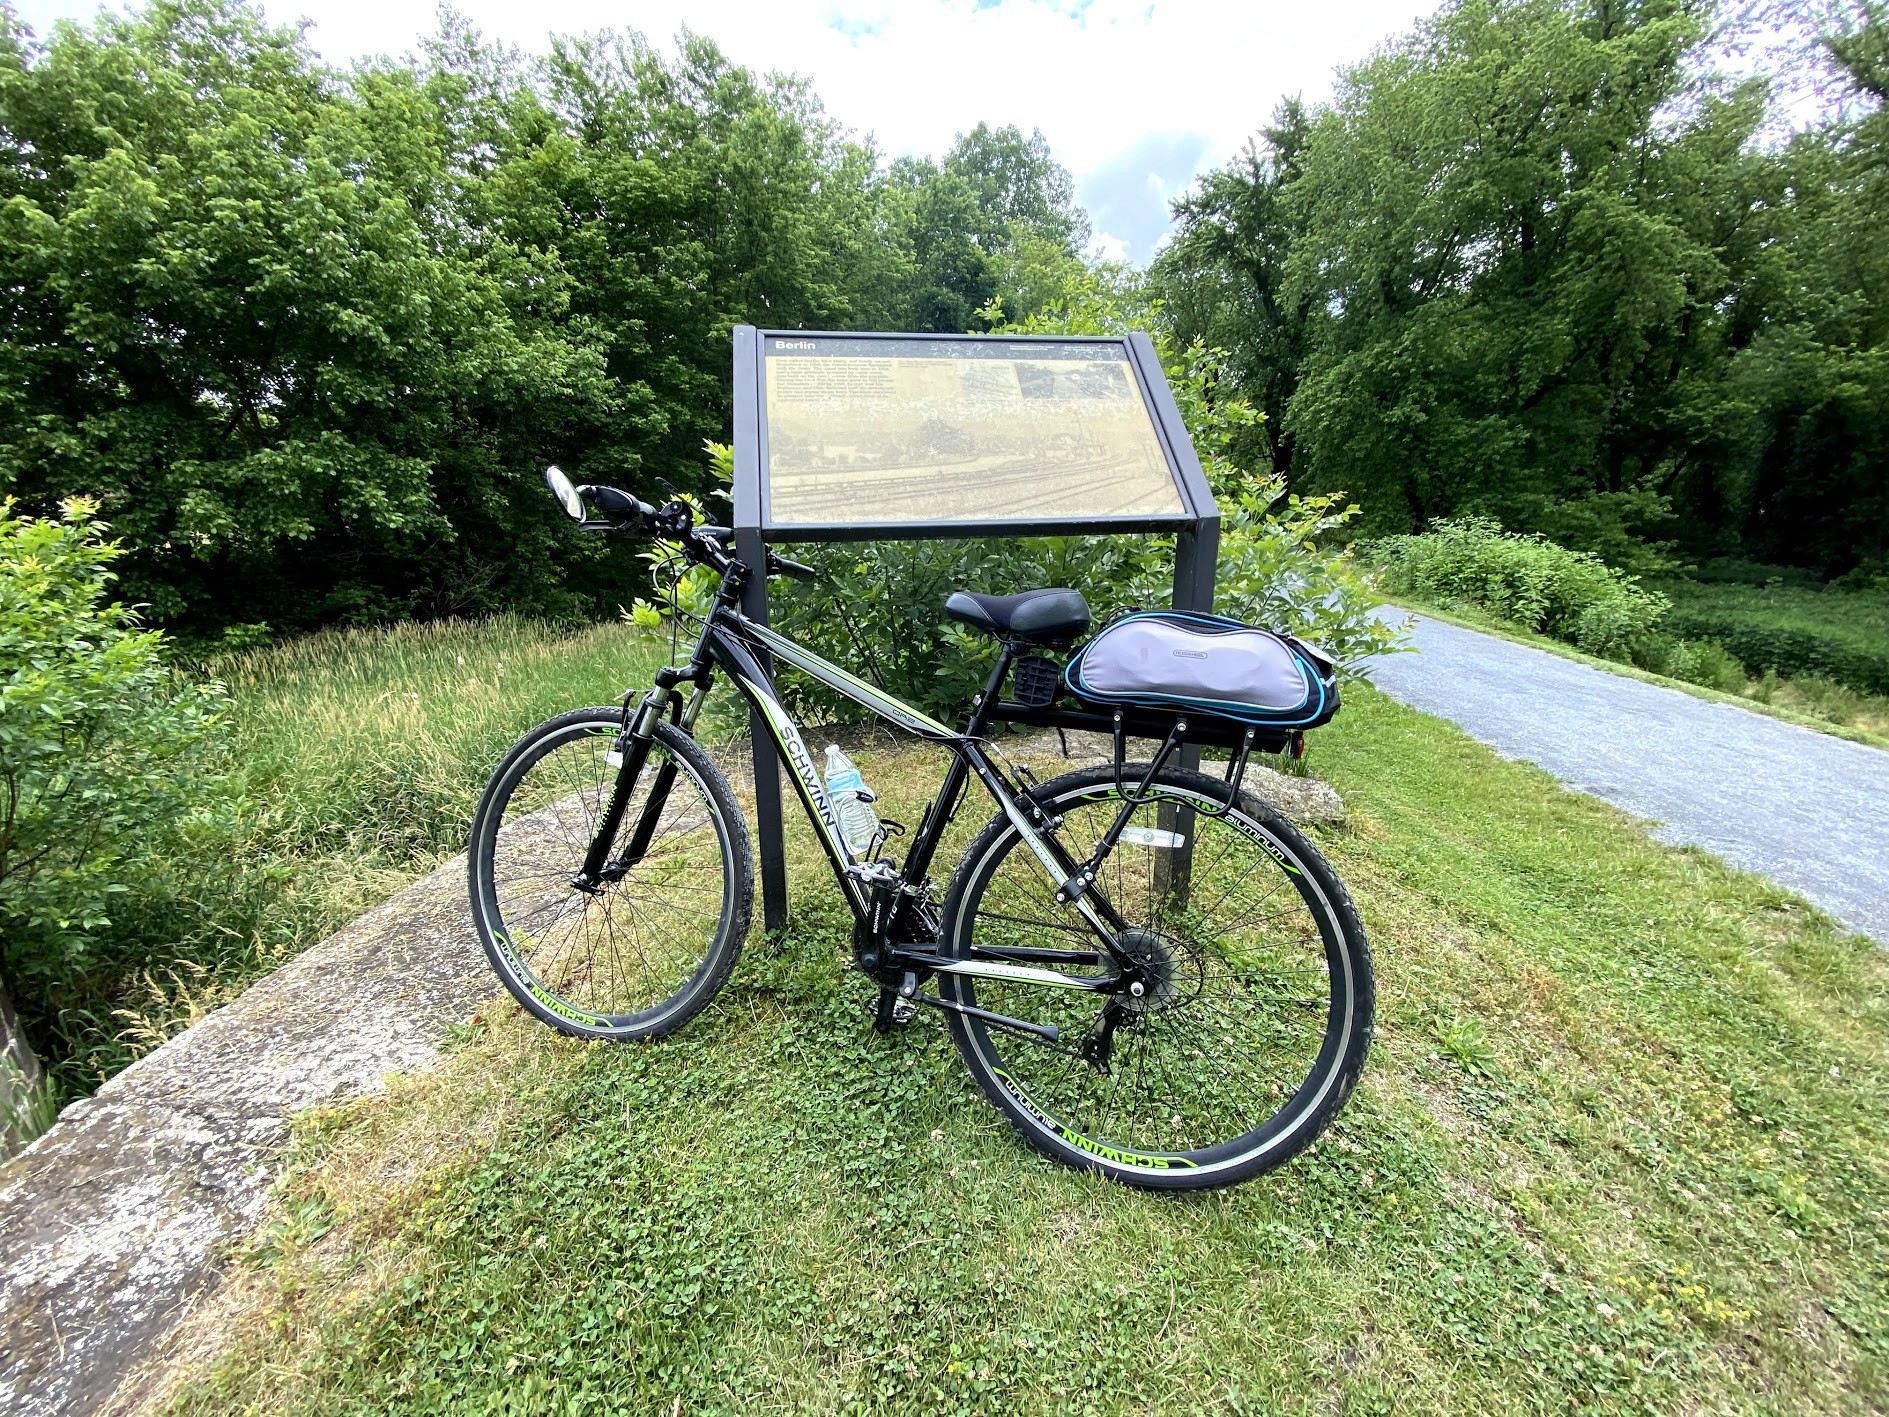 A bicycle is standing up next to a sign on a trail